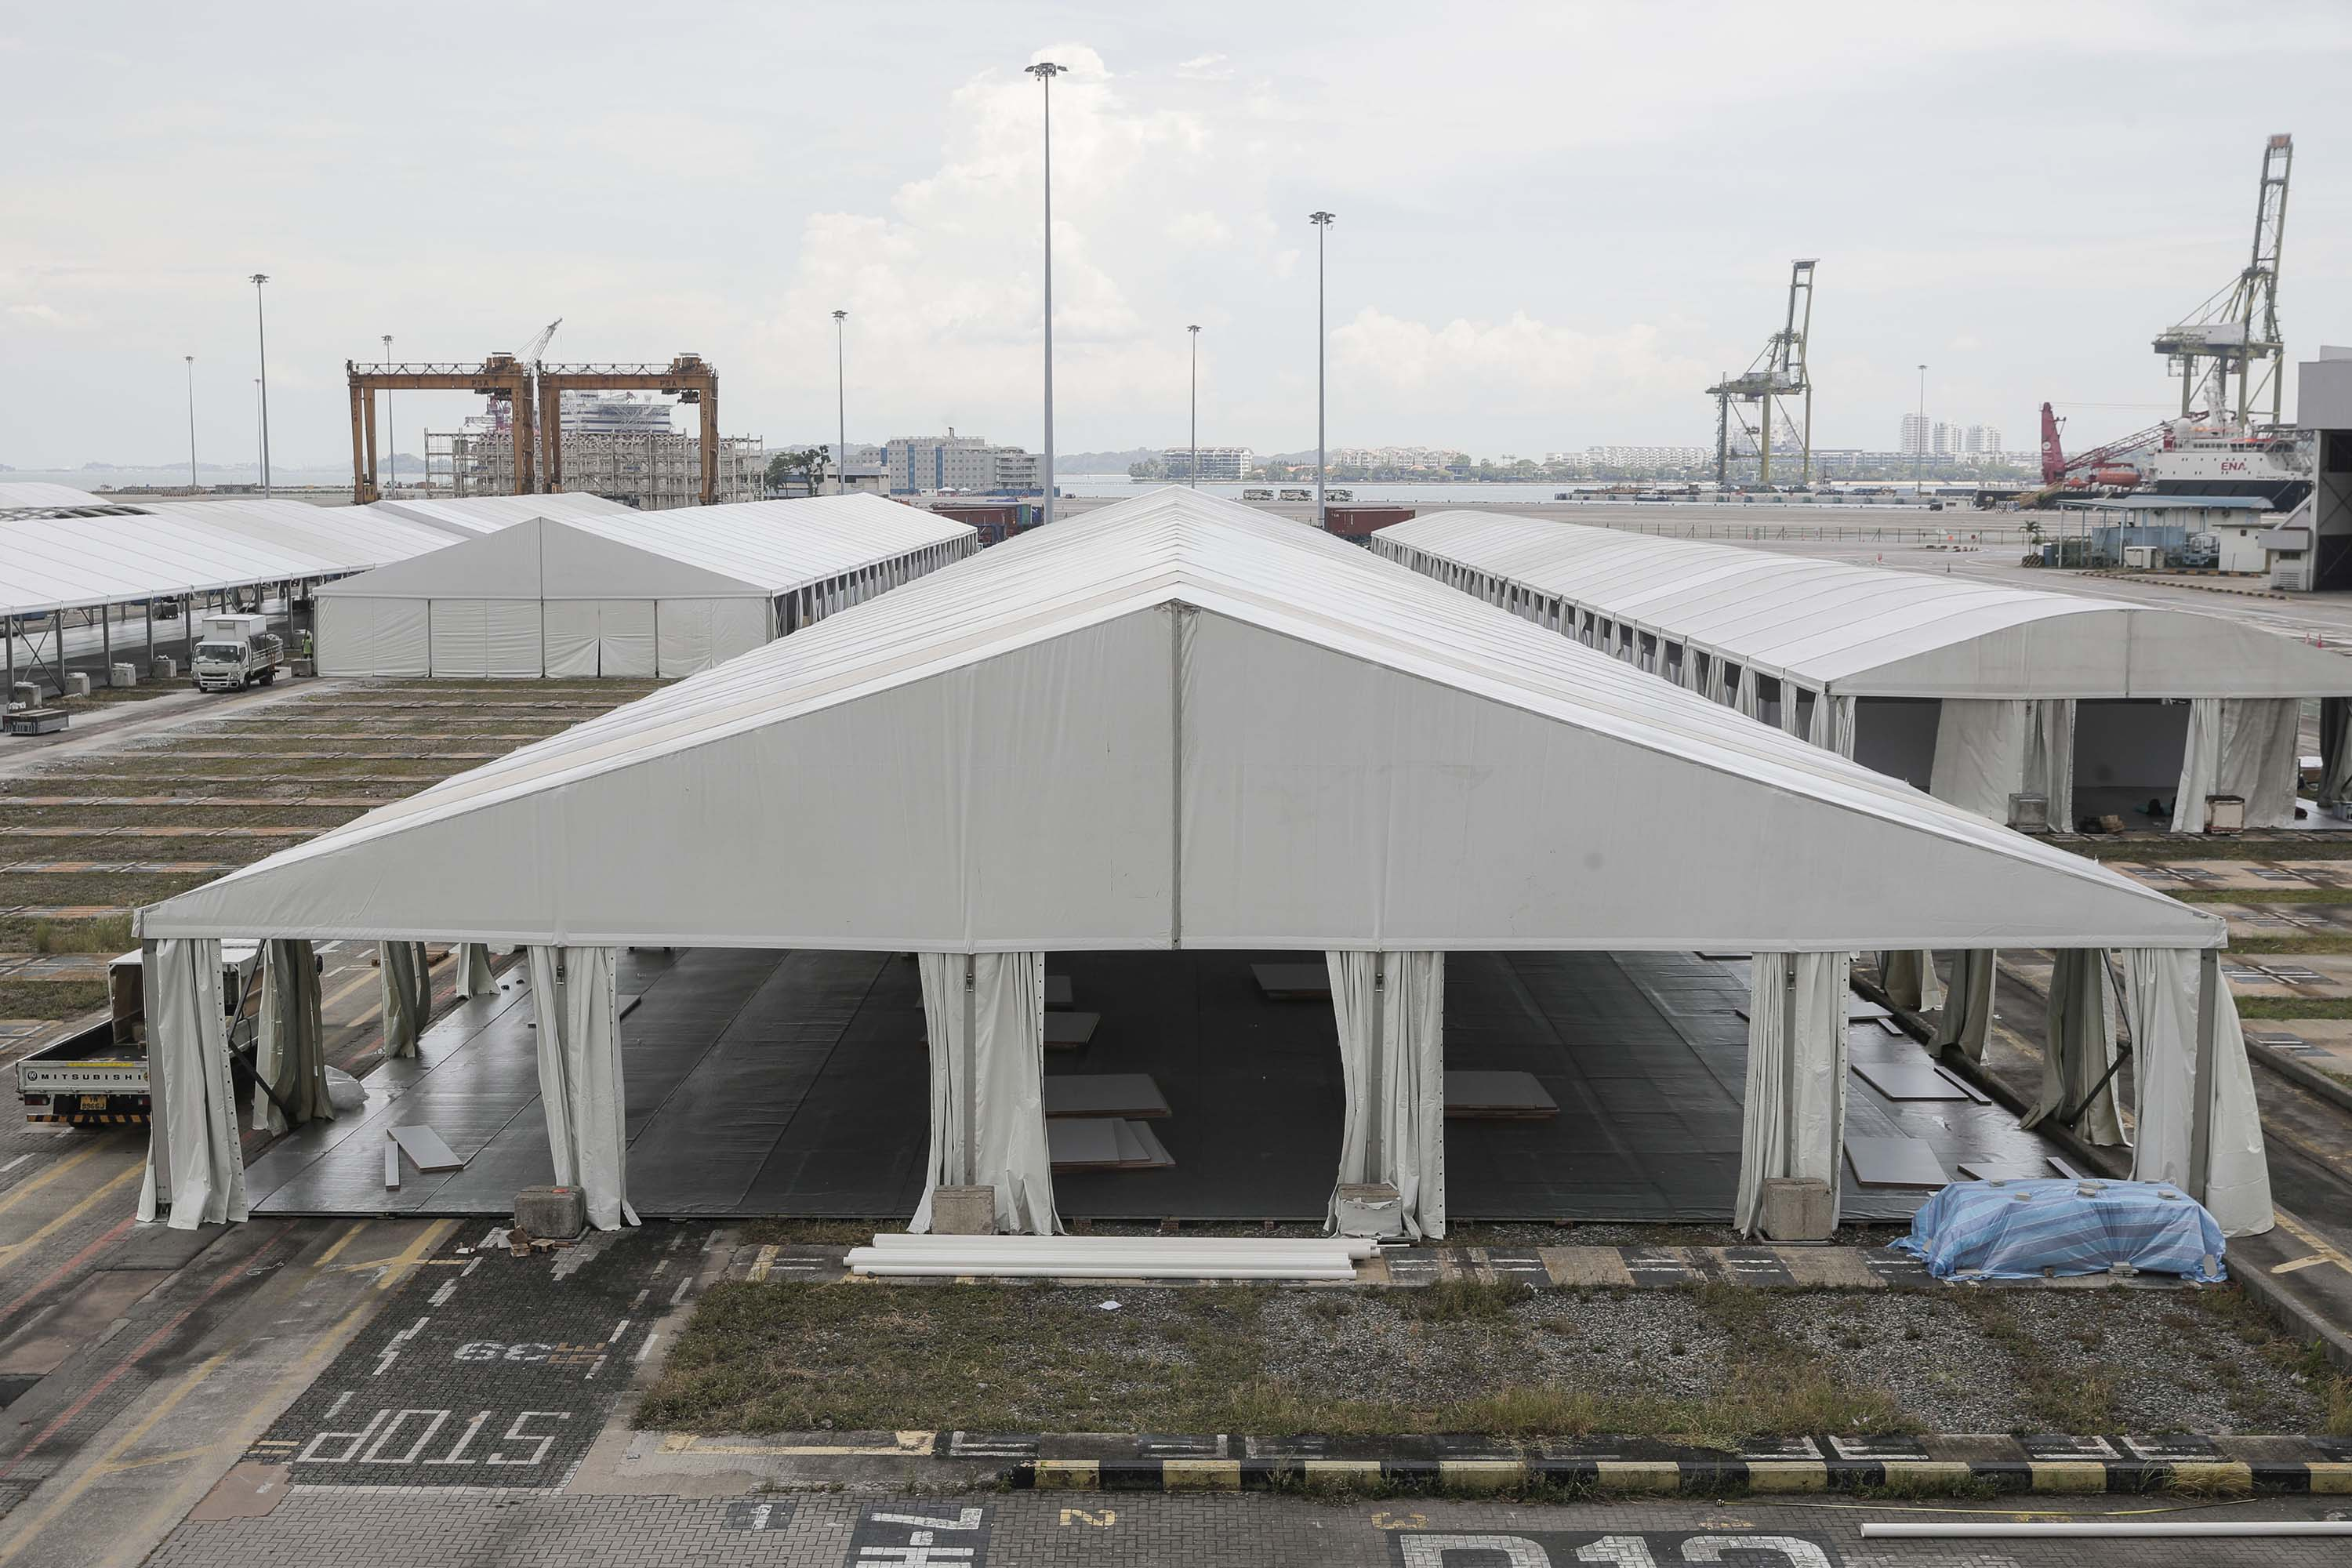 Tents are constructed for use as an isolation facility for COVID-19 patients at the Tanjong Pagar Terminal in Singapore, on April 24.